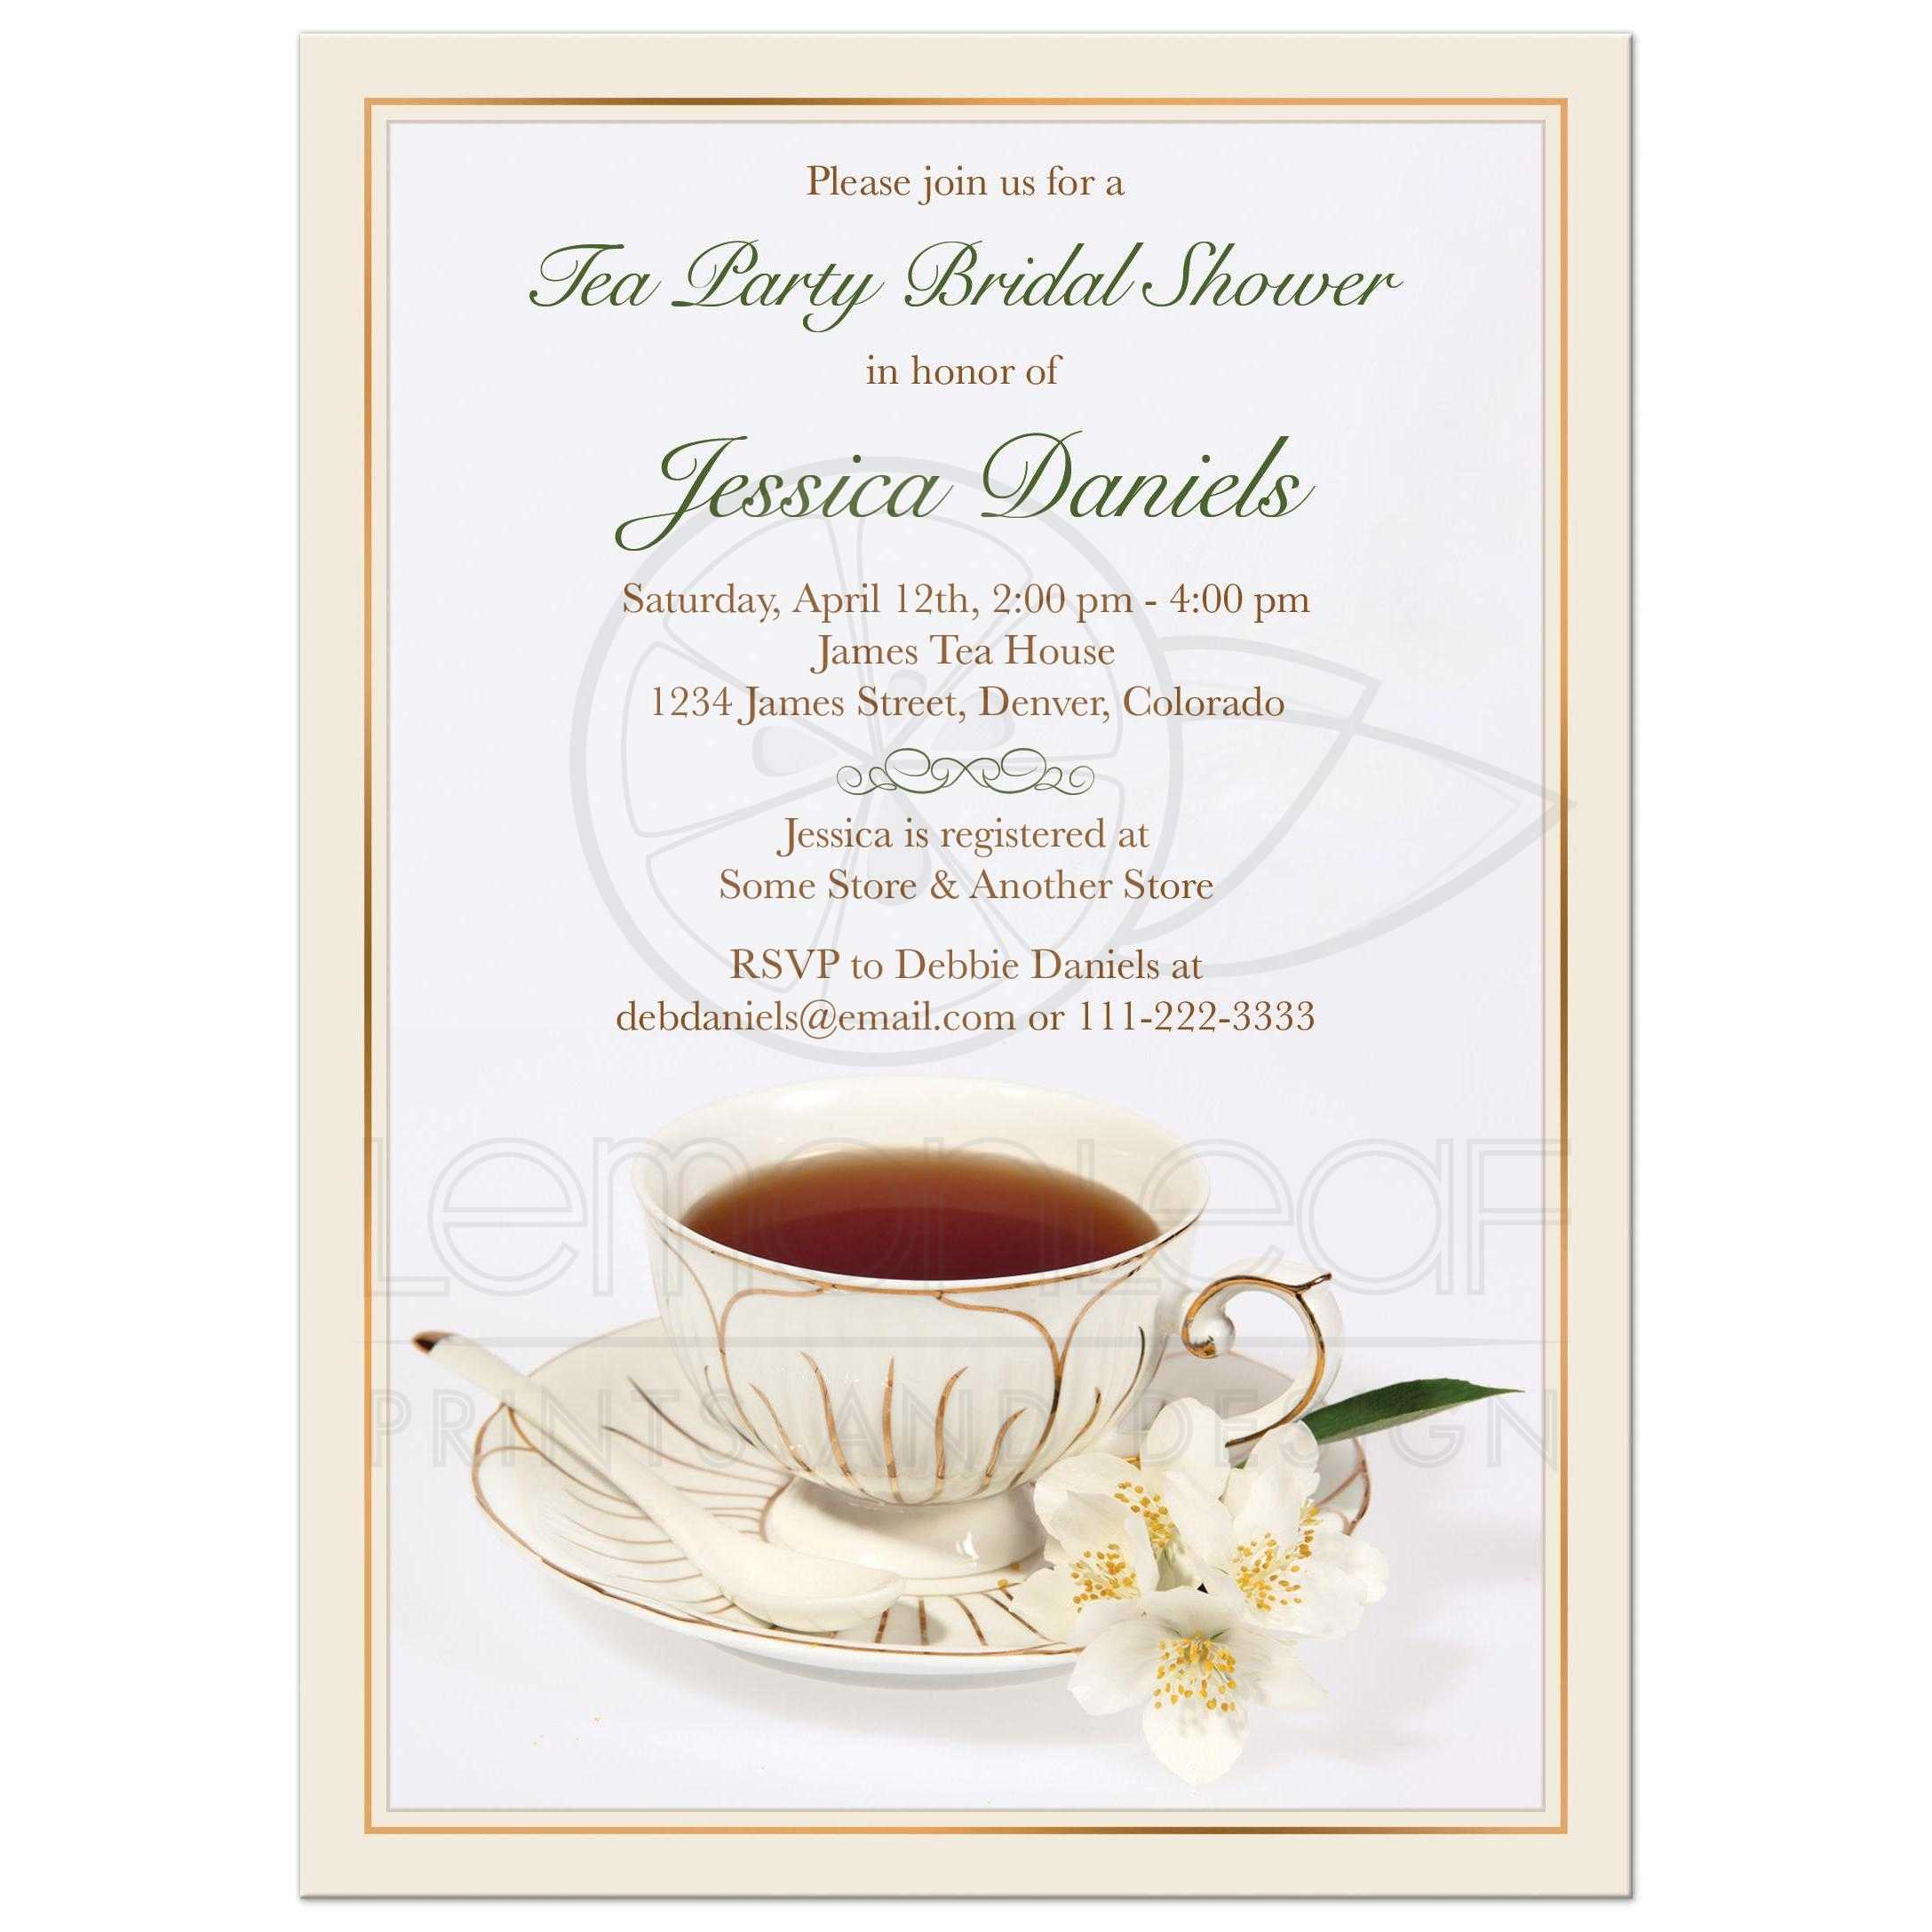 China Teacup Jasmine Flowers Tea Party Bridal Shower Invitation